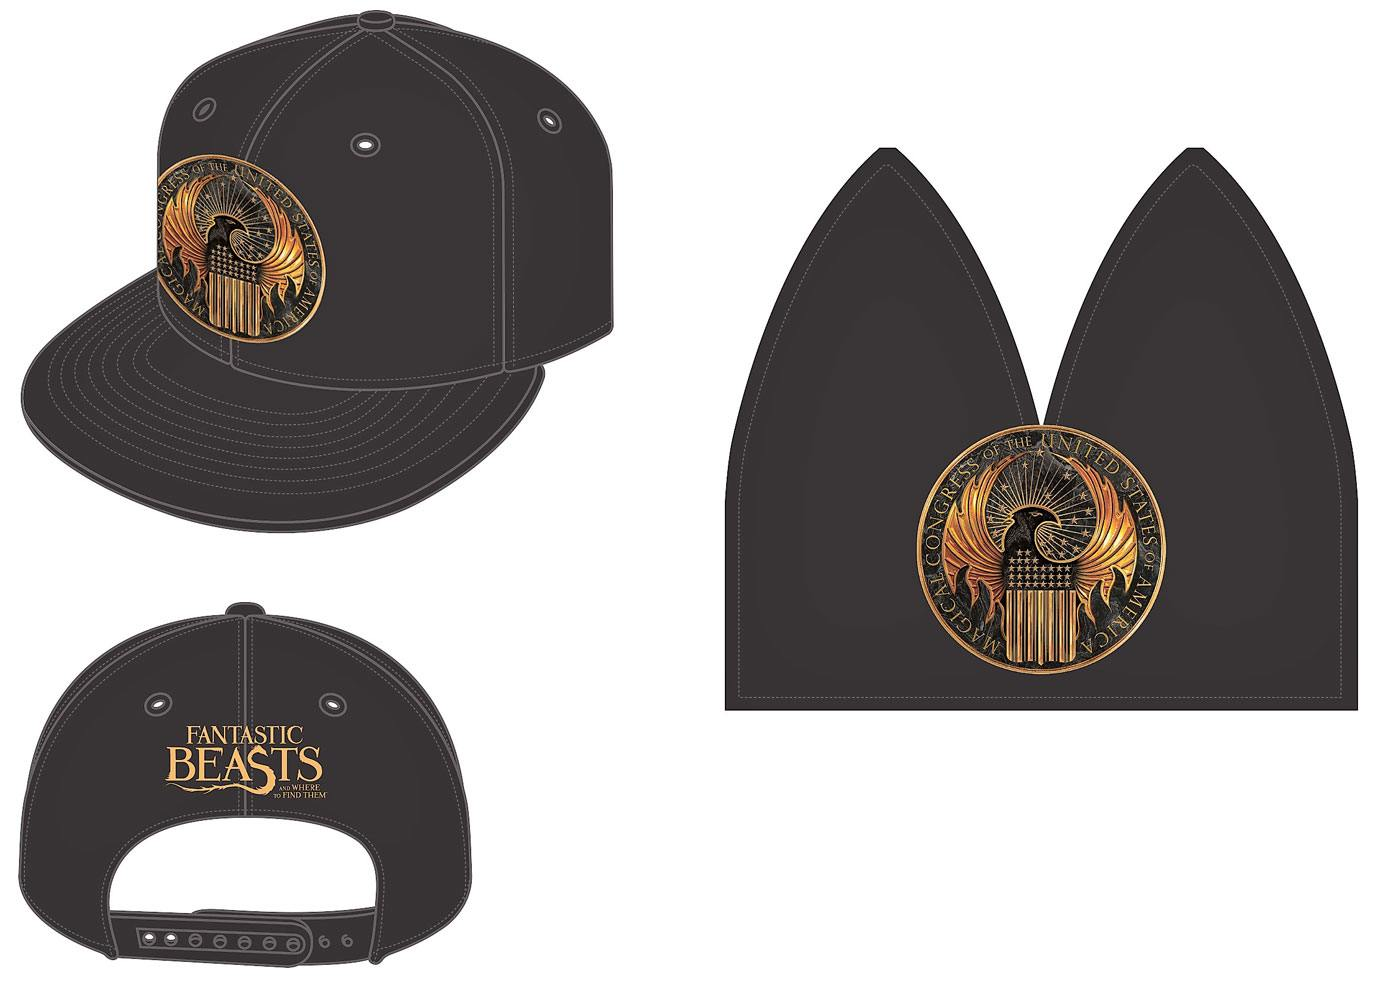 Fantastic Beasts Snap Back Cap Fantastic Beasts & Where To Find Them